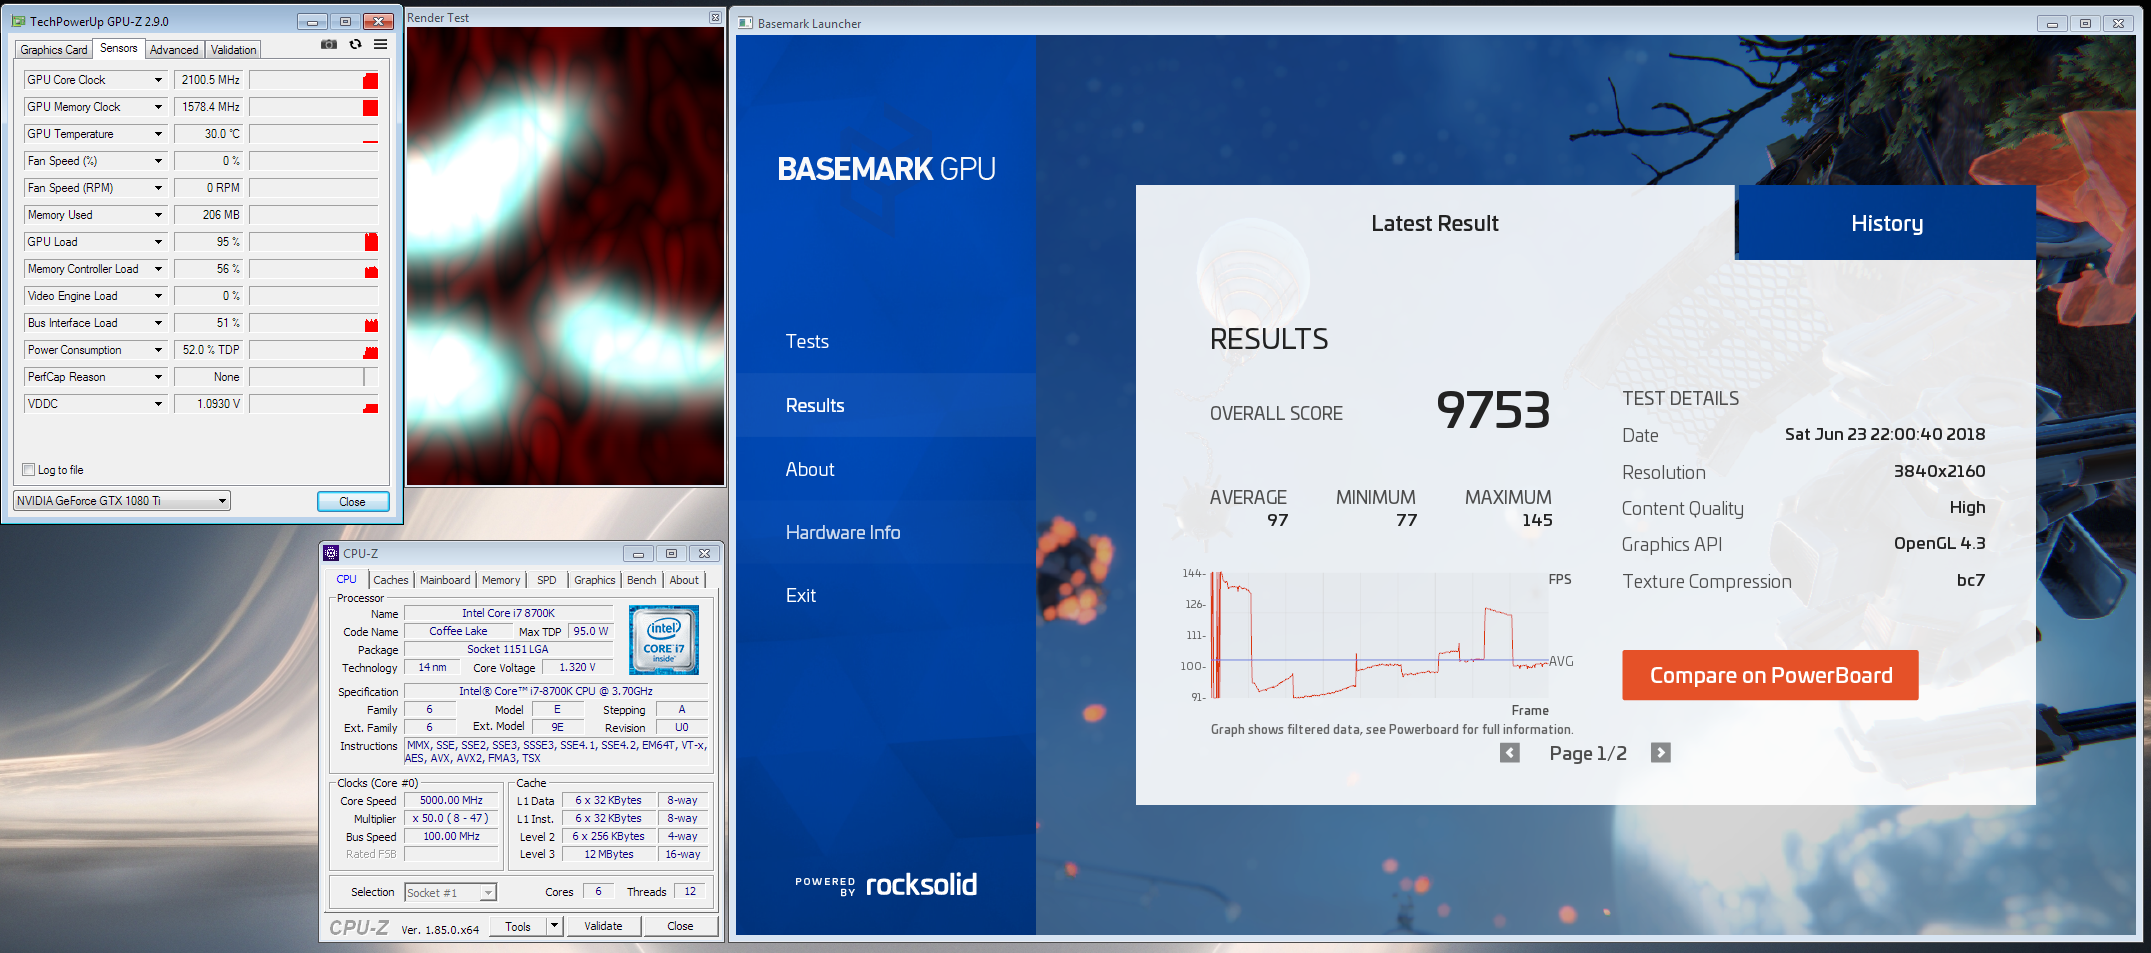 Post Your BaseMark GPU Scores! | Page 5 | TechPowerUp Forums